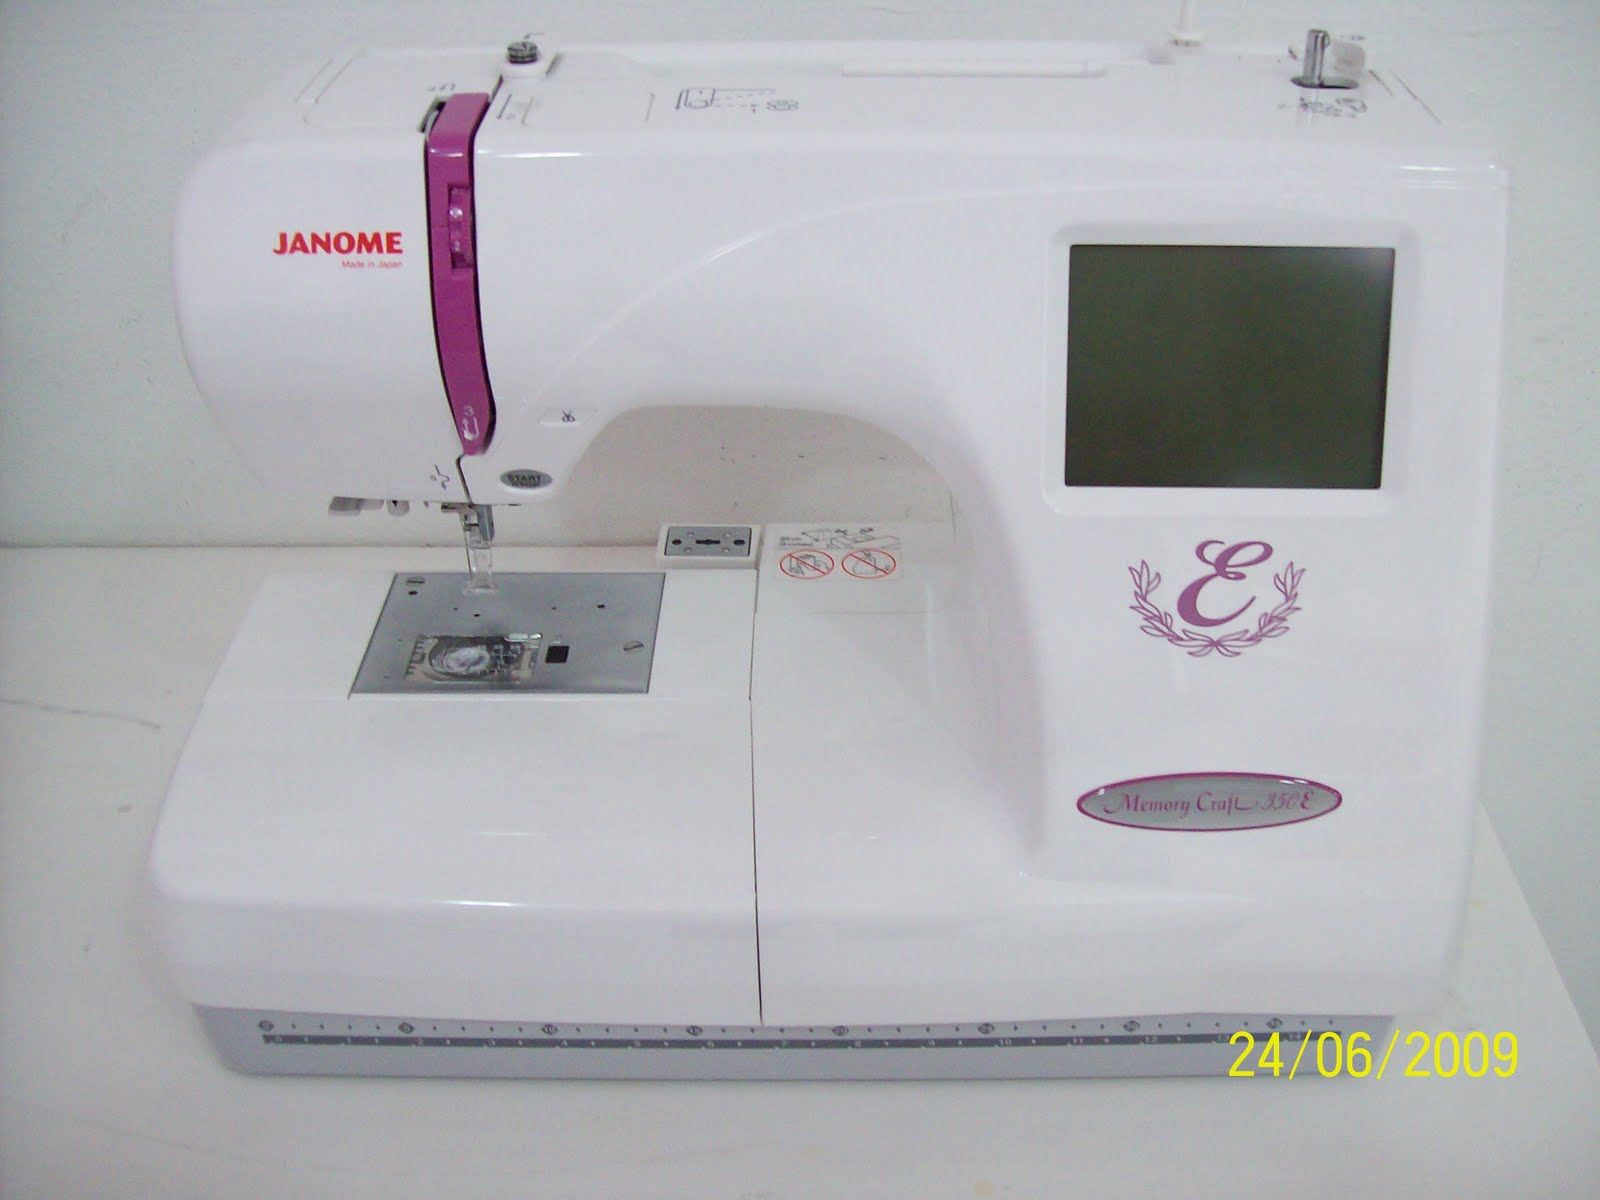 Dihah maju enterprise mesin sulaman utk dijual for Janome memory craft 350e manual